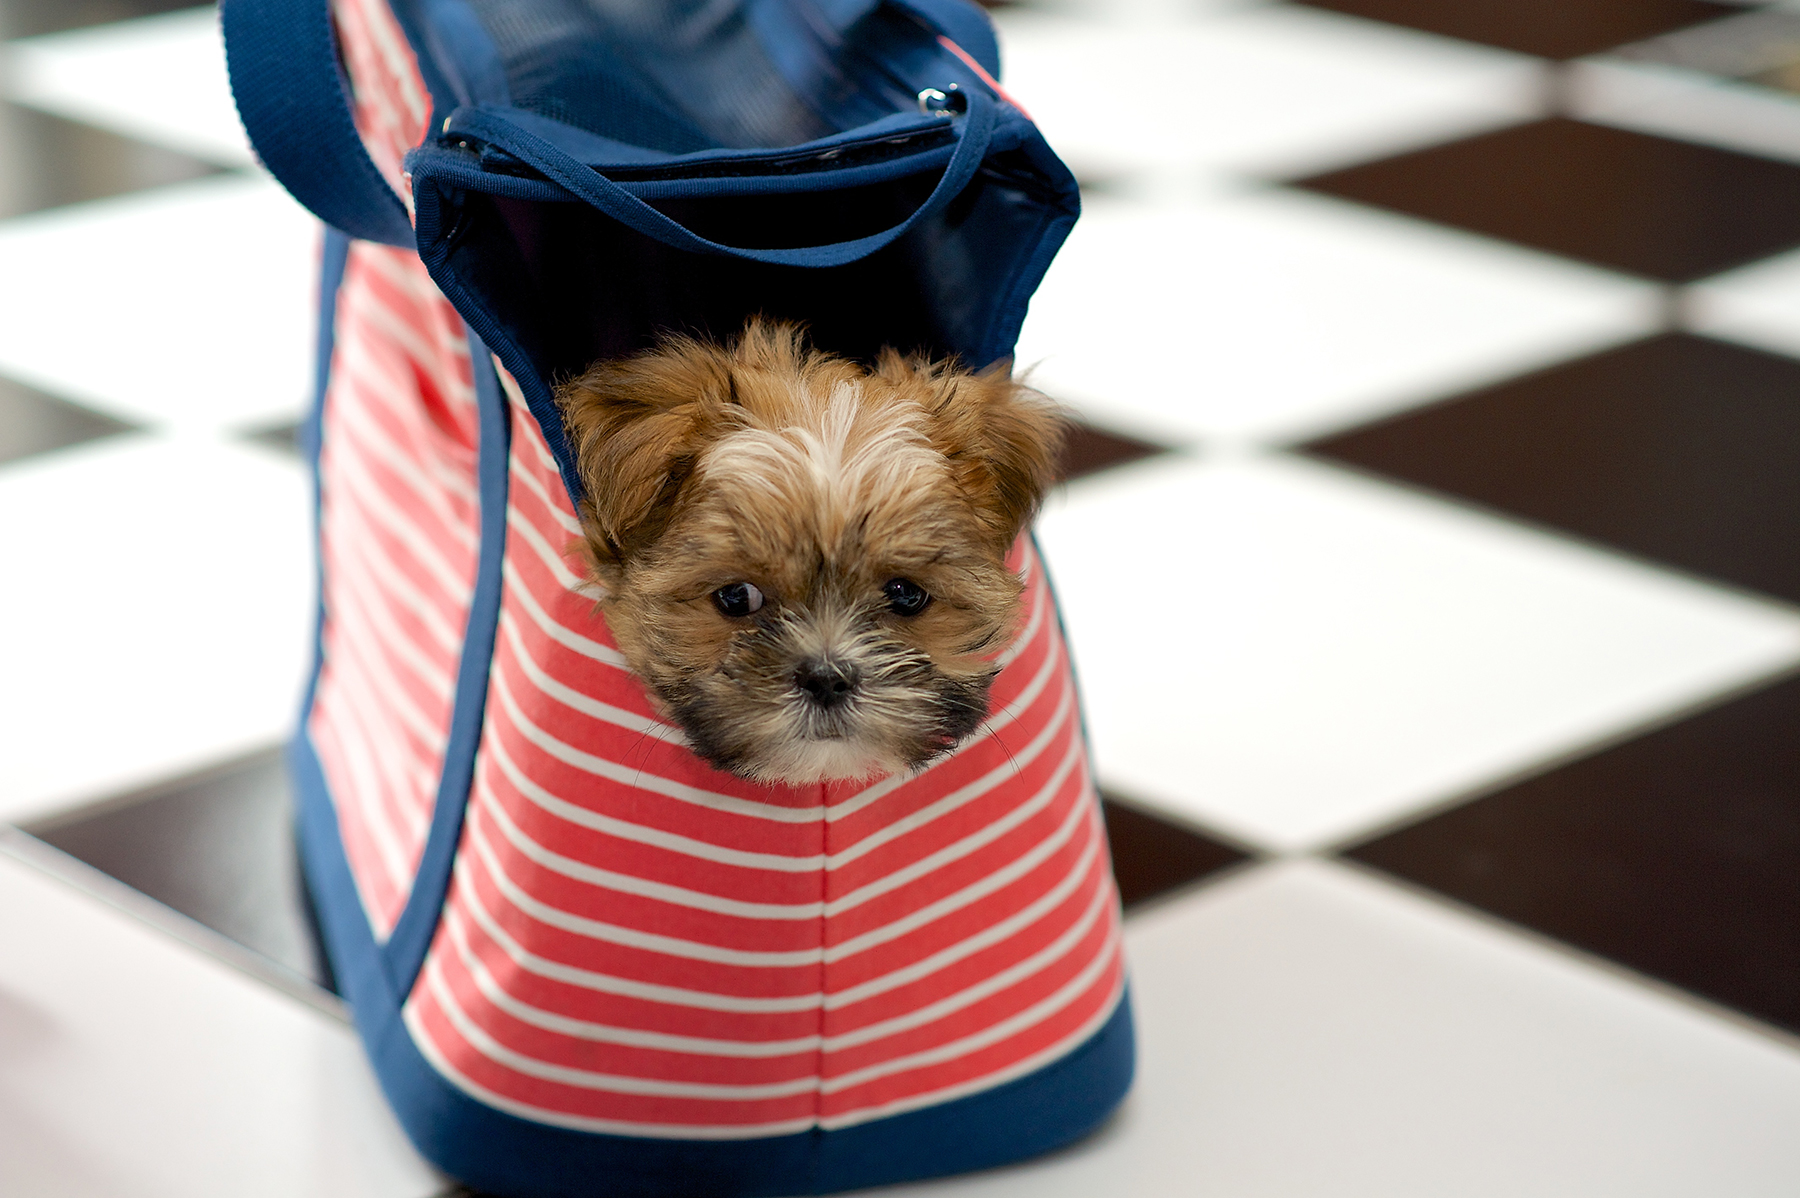 Shorkie puppy in pet carrier